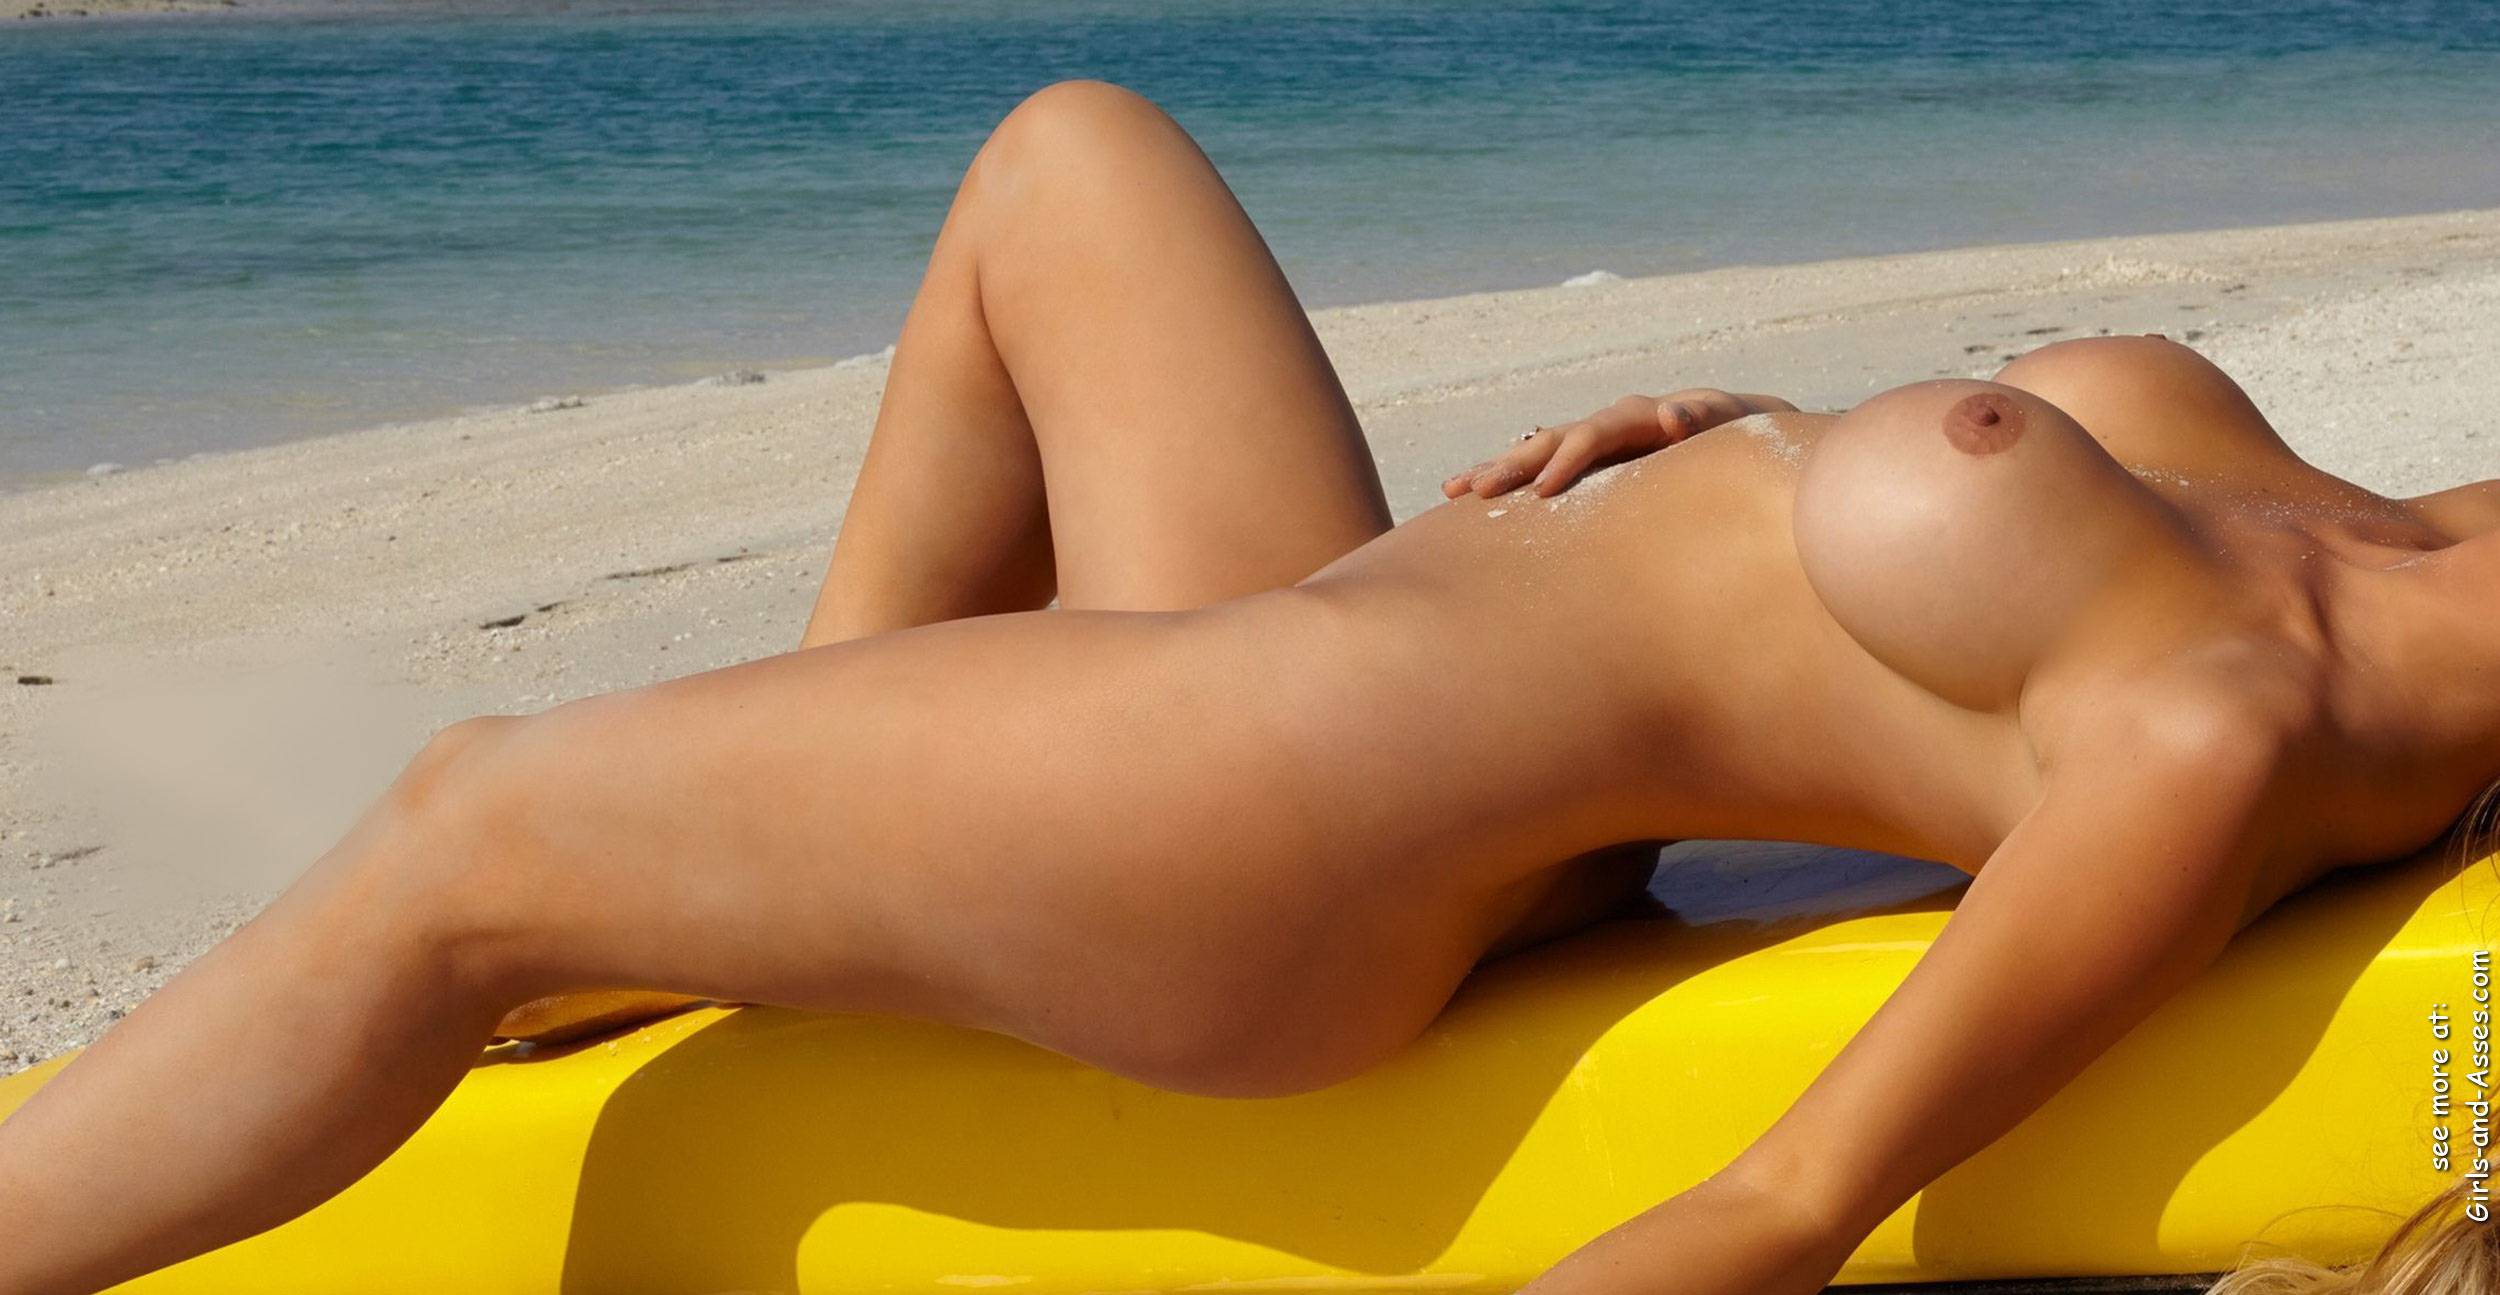 naked sunbathing tanning on the beach pic 03657